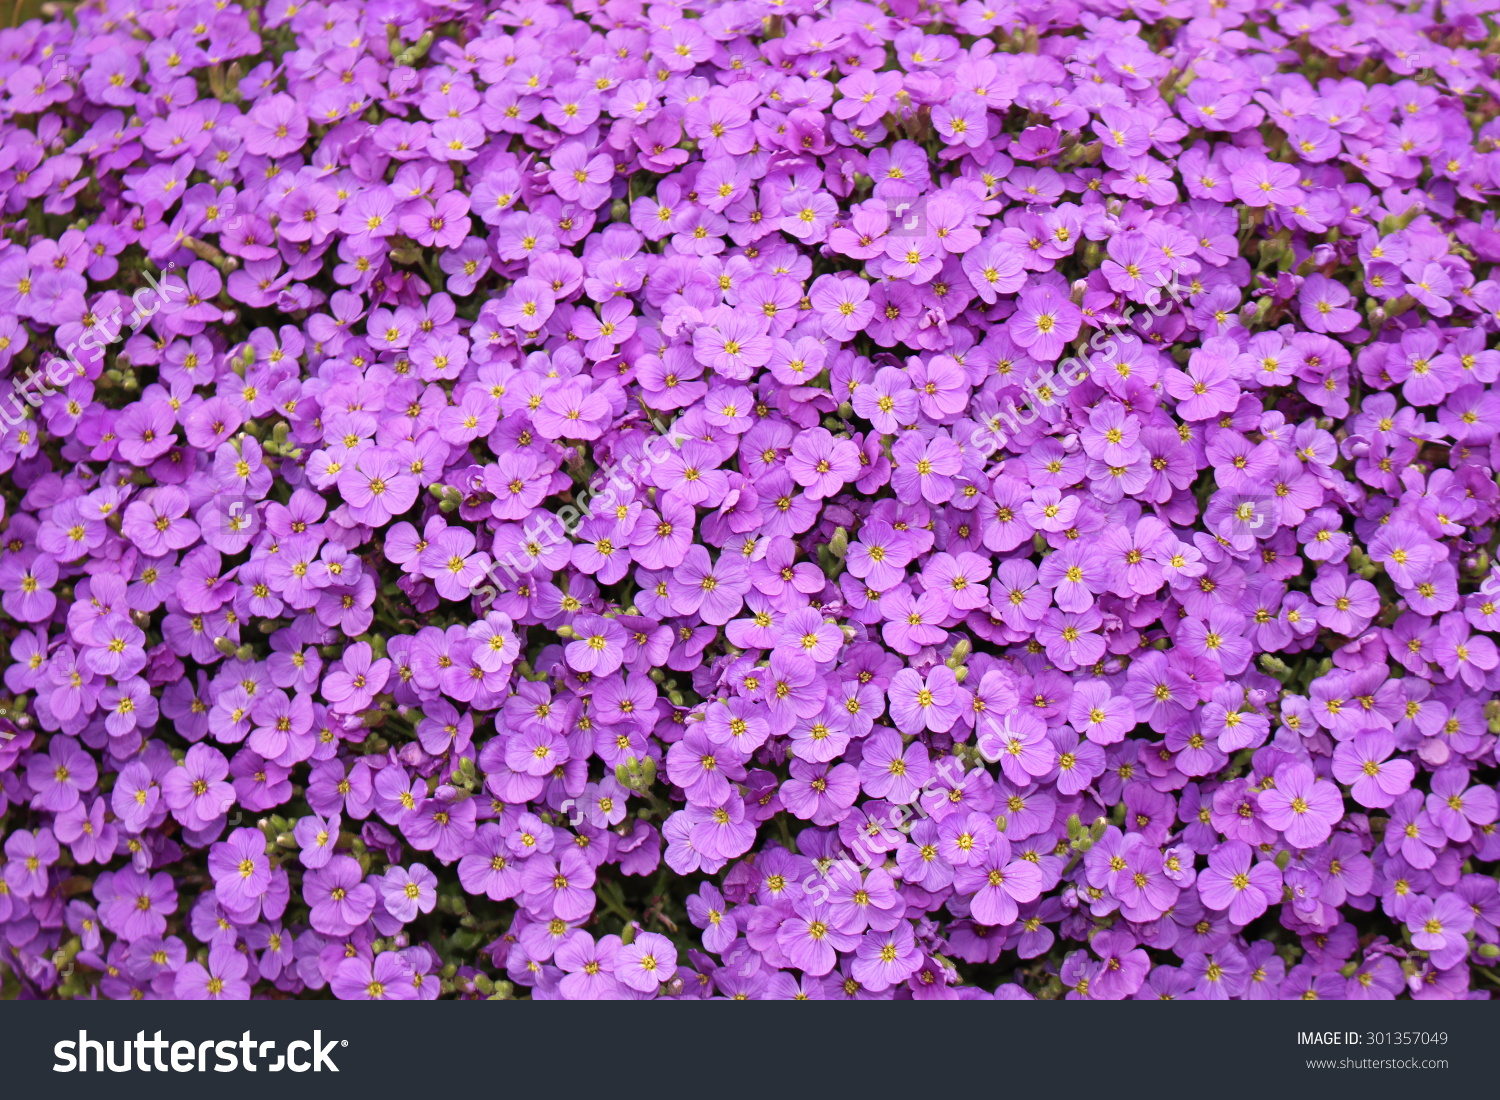 Purple Aubrieta Flowers Aubretia Flowers Aubrieta Stock Photo.